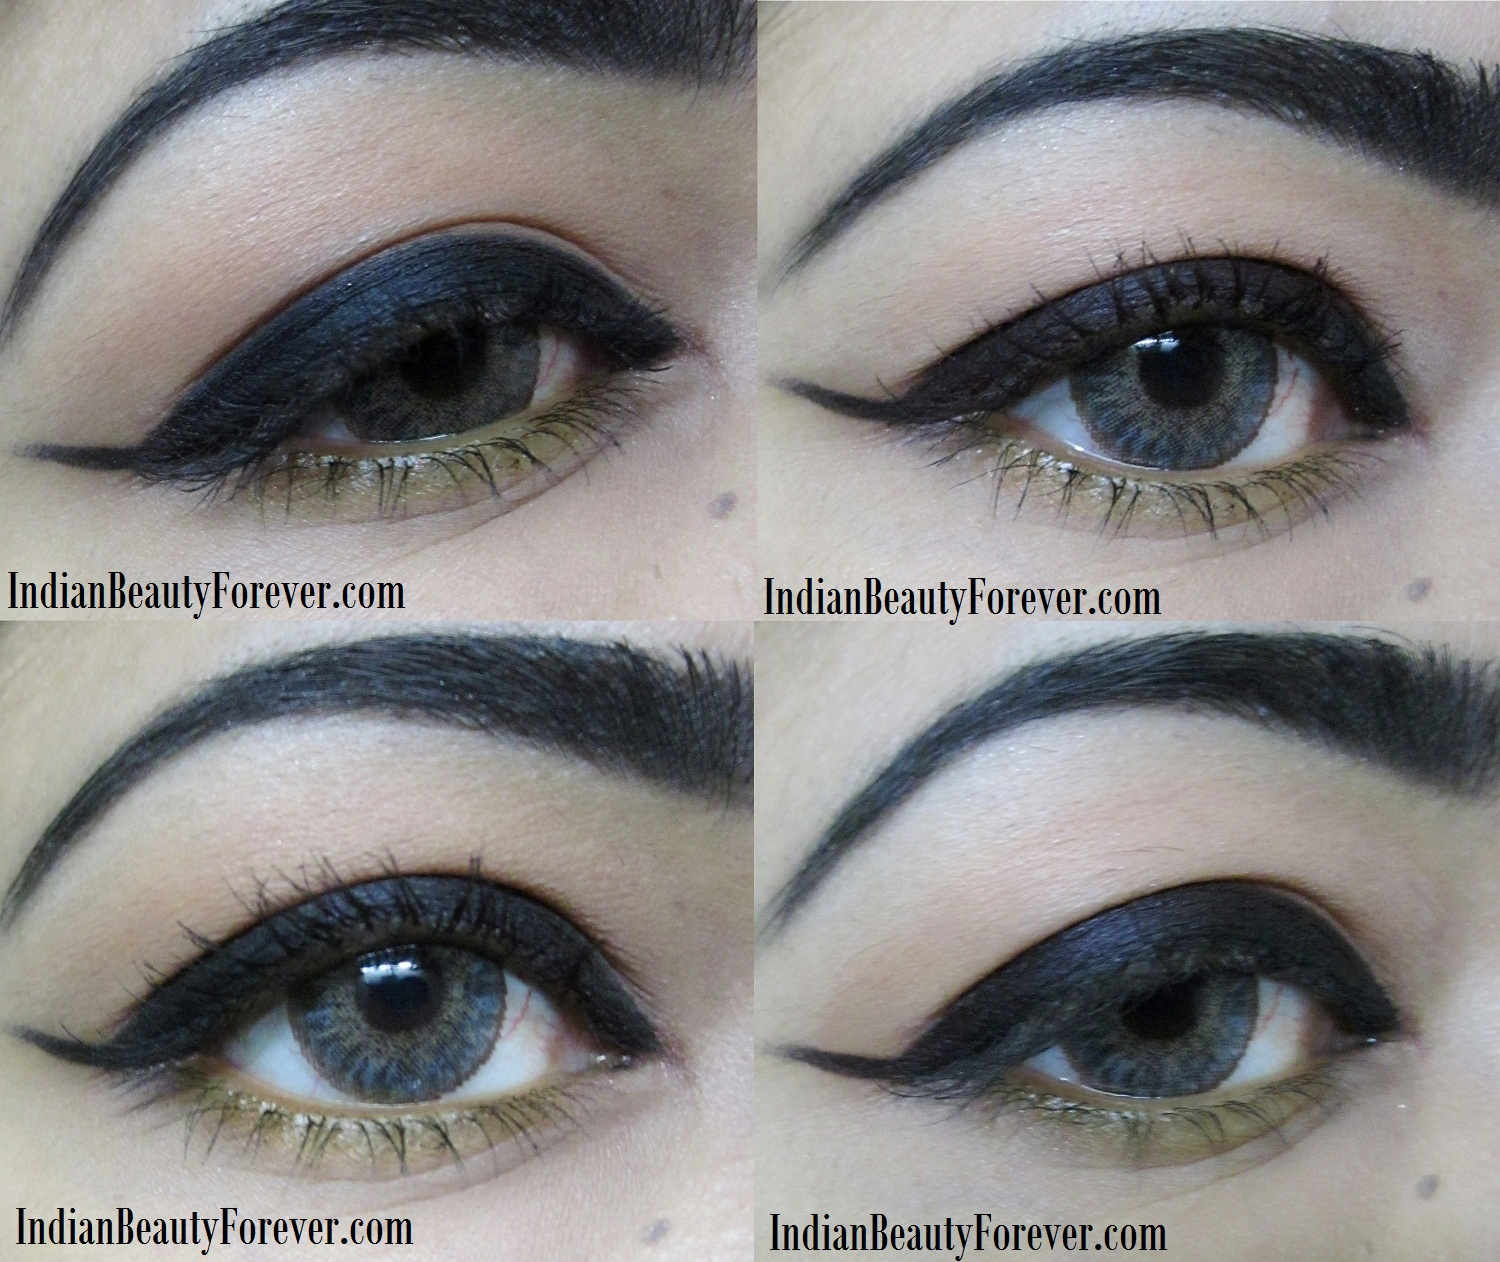 Maybelline Lasting Drama Gel Eyeliner Black Review, swatches